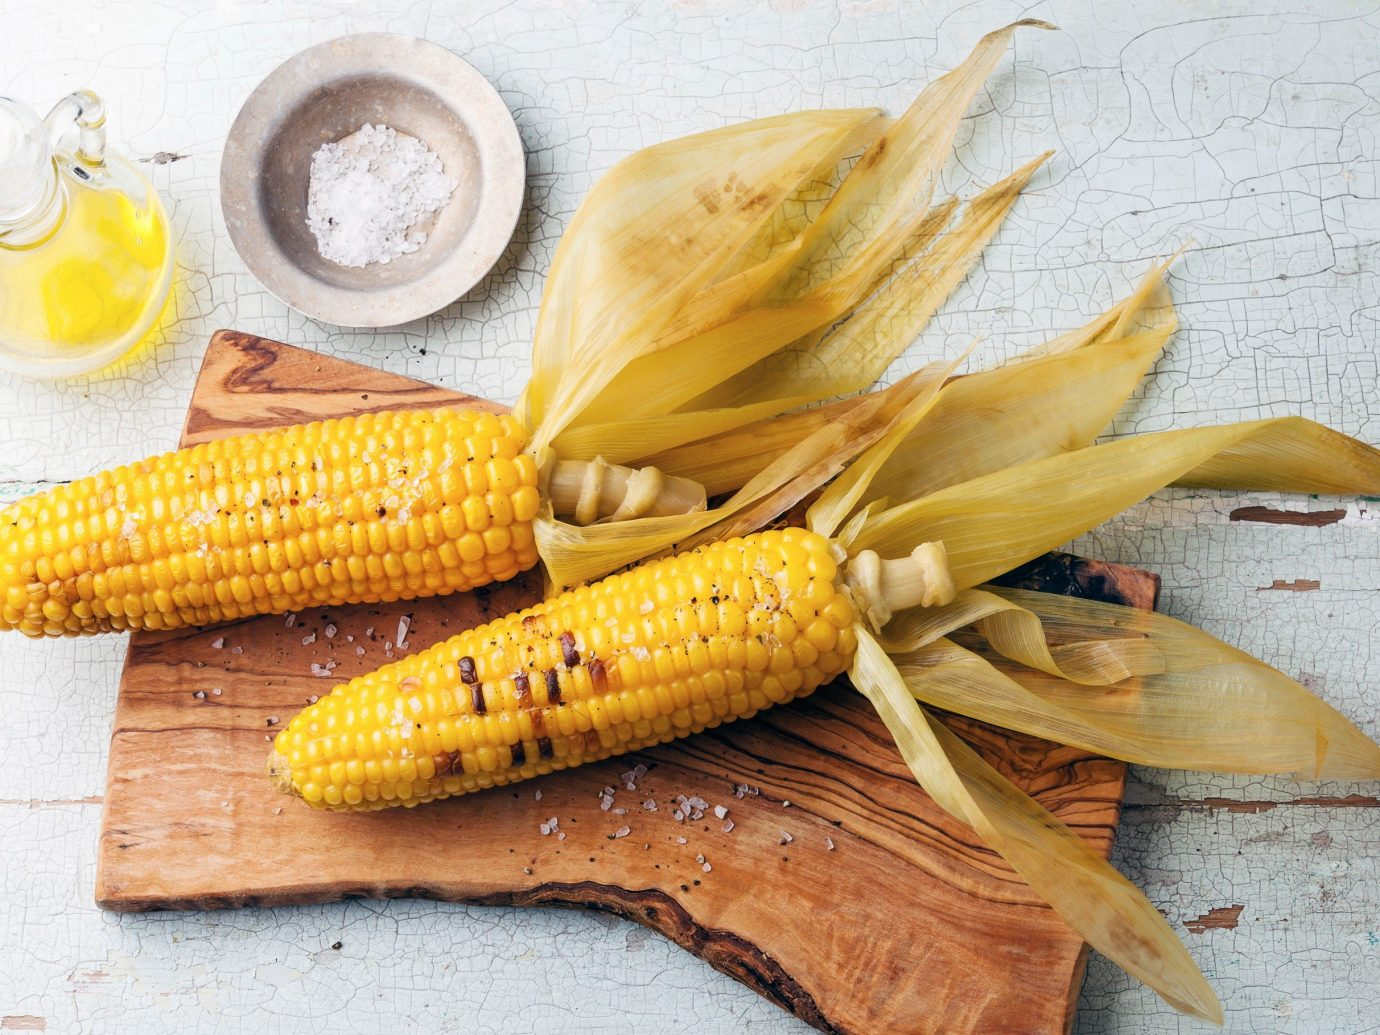 Trip Ideas table food corn on the cob yellow plant corn produce grass family wooden fish vegetable flowering plant dish cuisine meal snack food